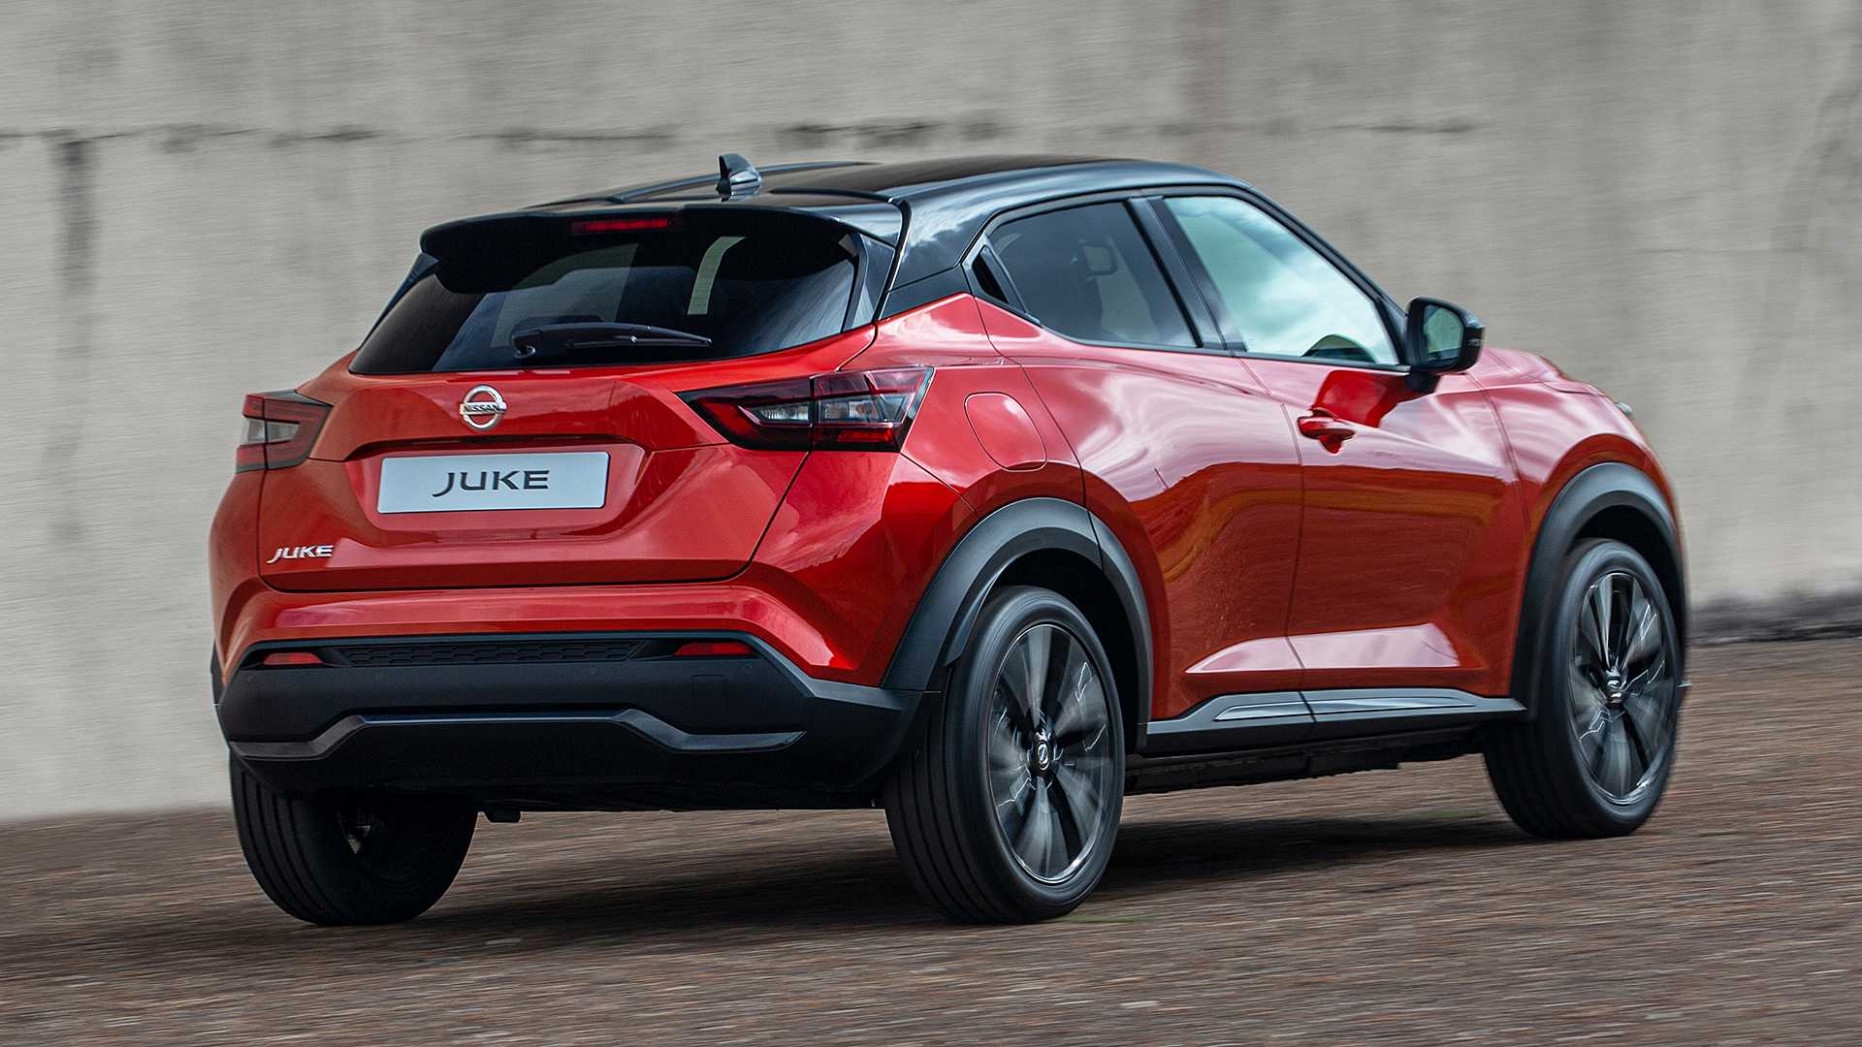 Exterior and Interior 2022 Nissan Juke